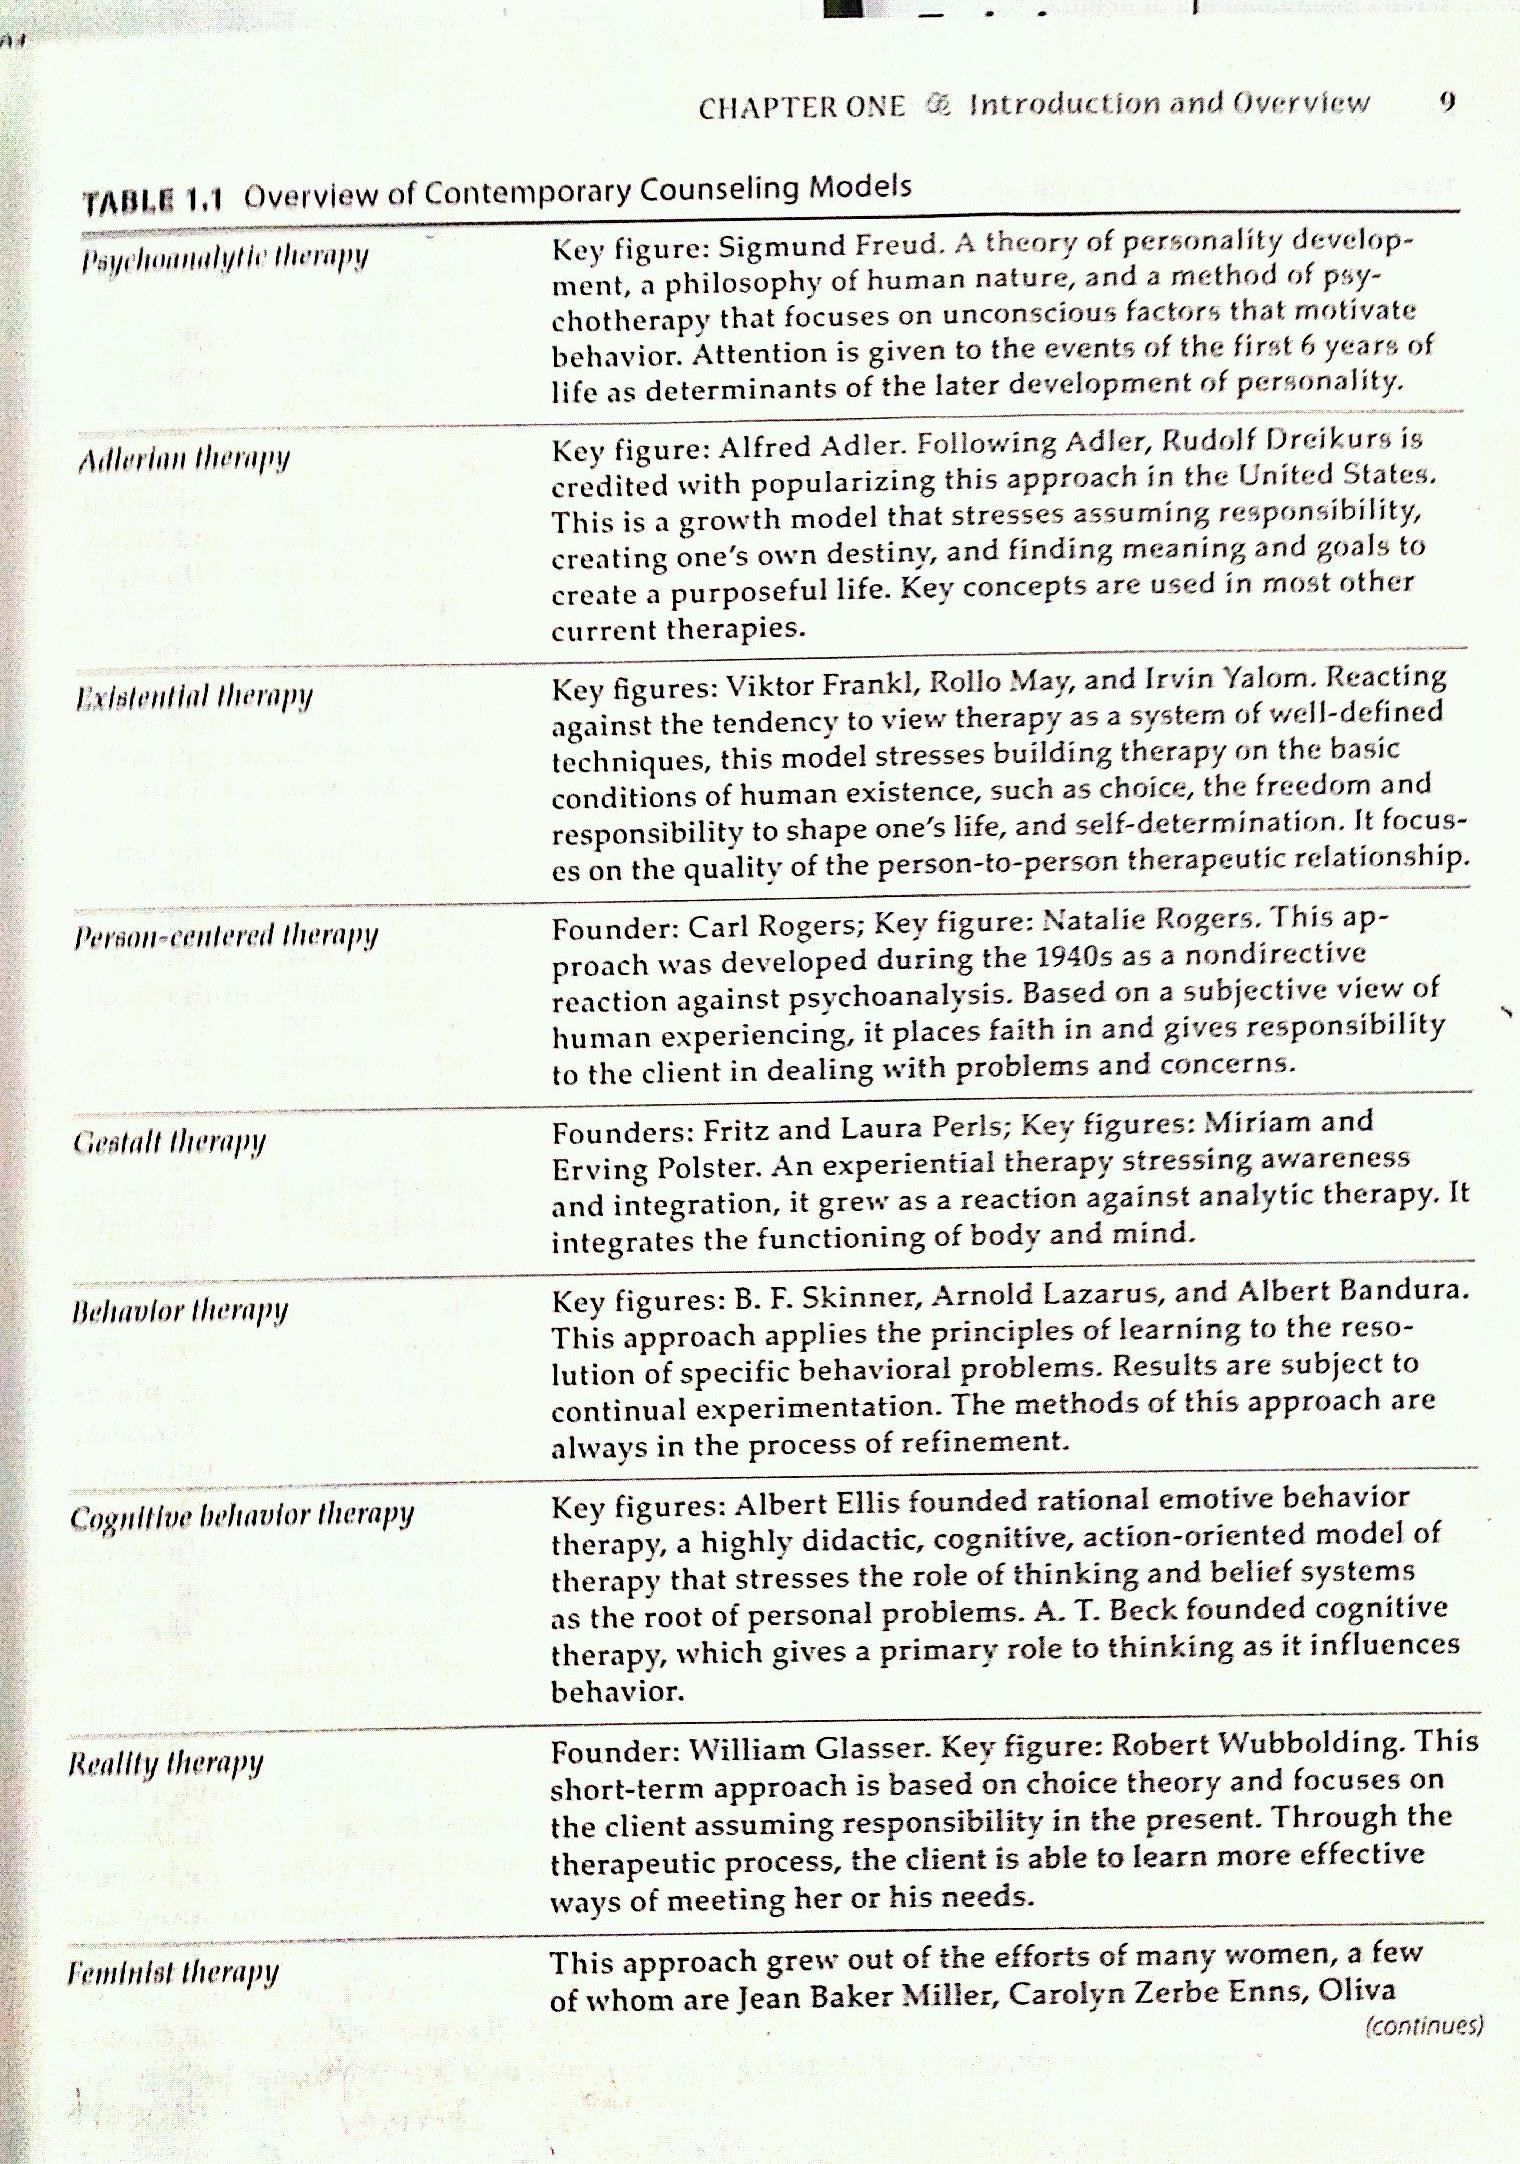 Pin By Gail Newman On Counseling Activities In 2020 Social Work Exam Social Work Theories Counselling Theories